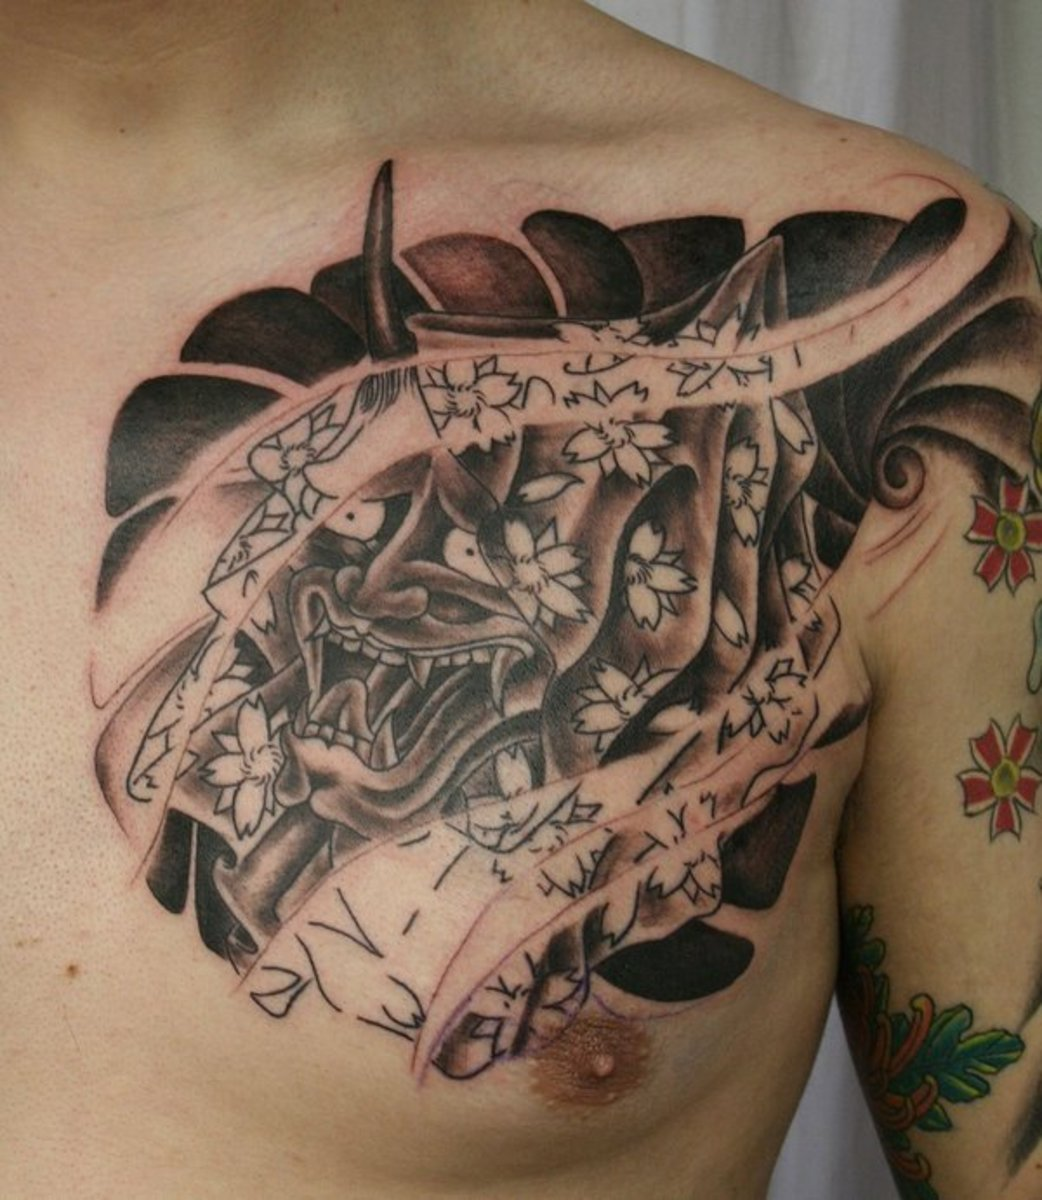 A chest tattoo of a hannya mask.